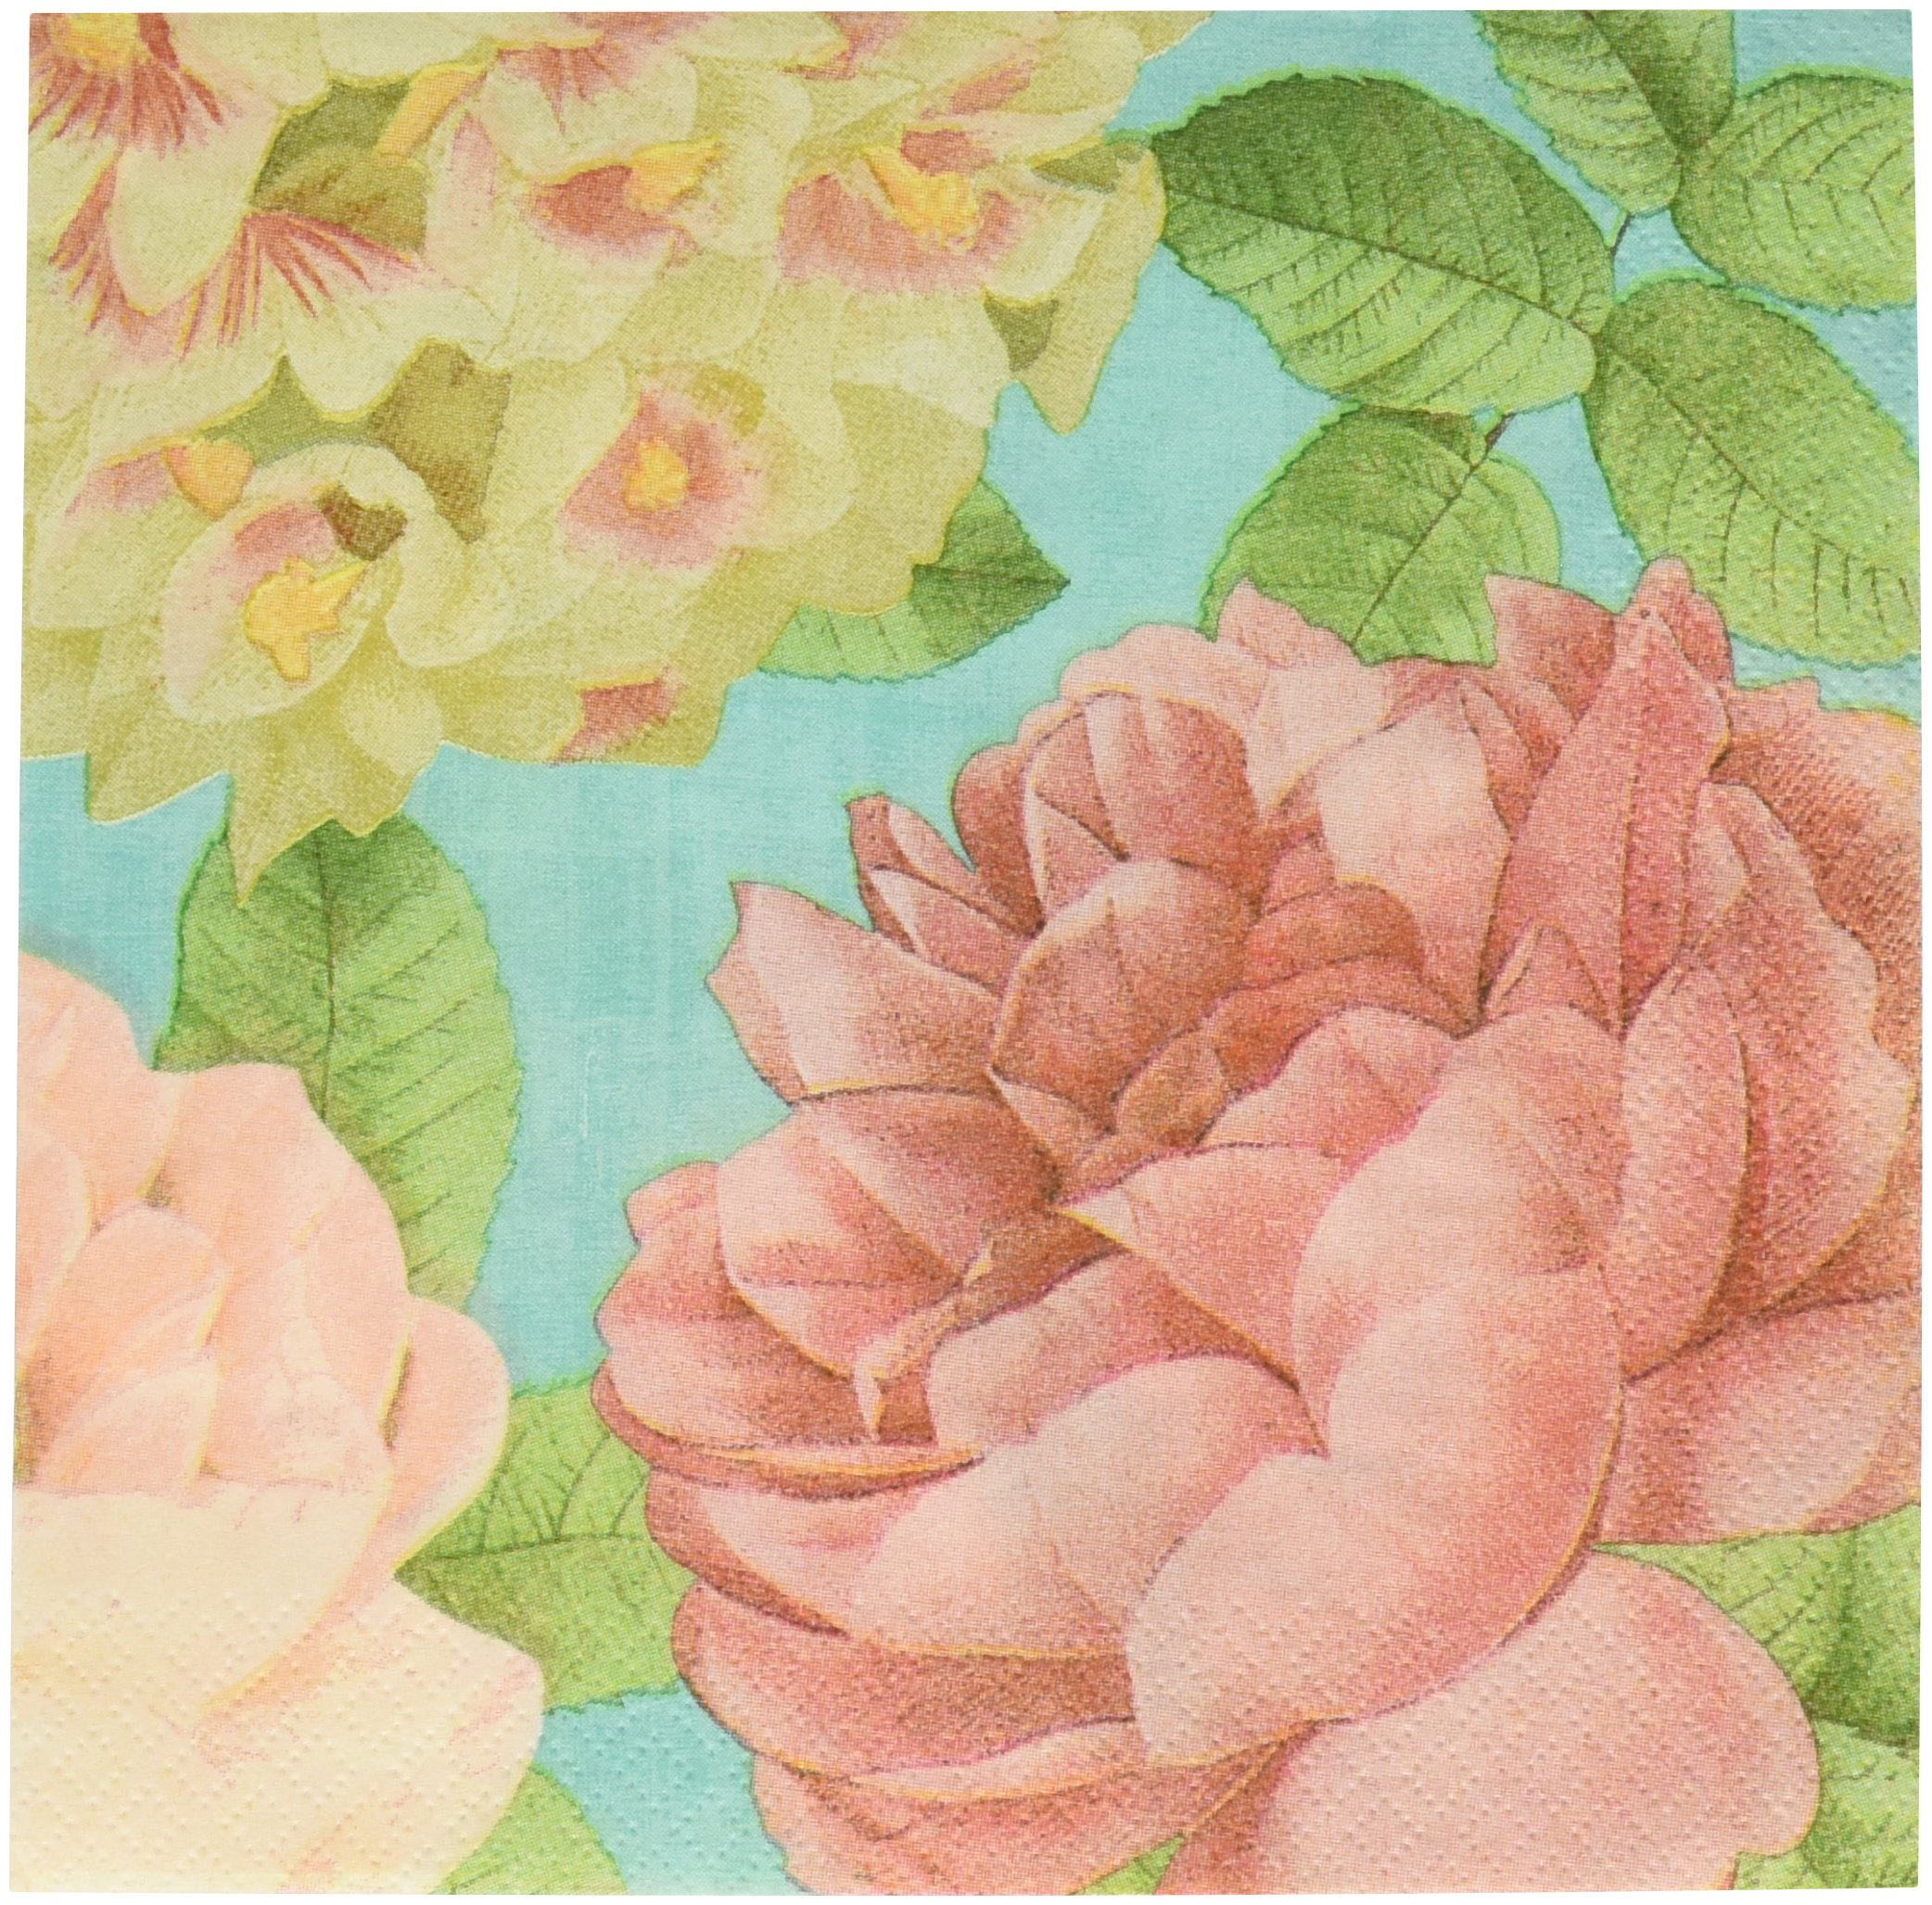 Amscan Blissful Blooms Napkin Floral Garden Party Tableware, 36 Pieces, Made from Paper by by Amscan